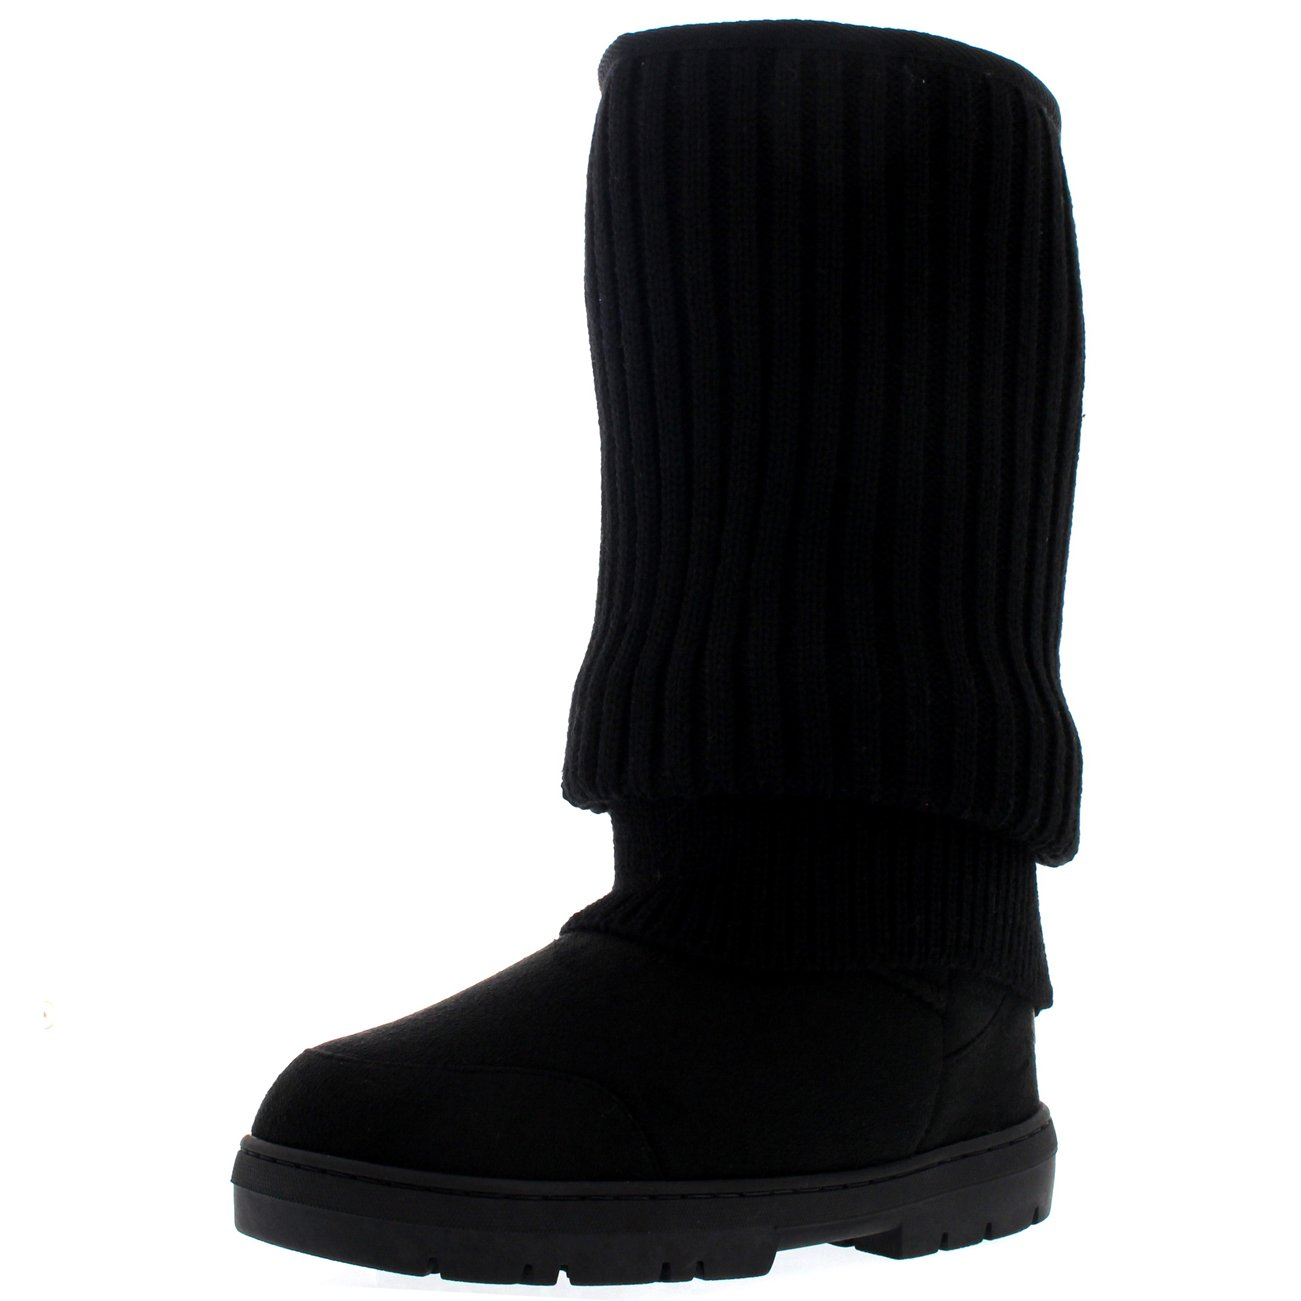 Holly Womens Tall Knitted Cardy Slouch Winter Snow Rain Outdoor Warm Shoe Boots - 8 - BLK39 EA0357